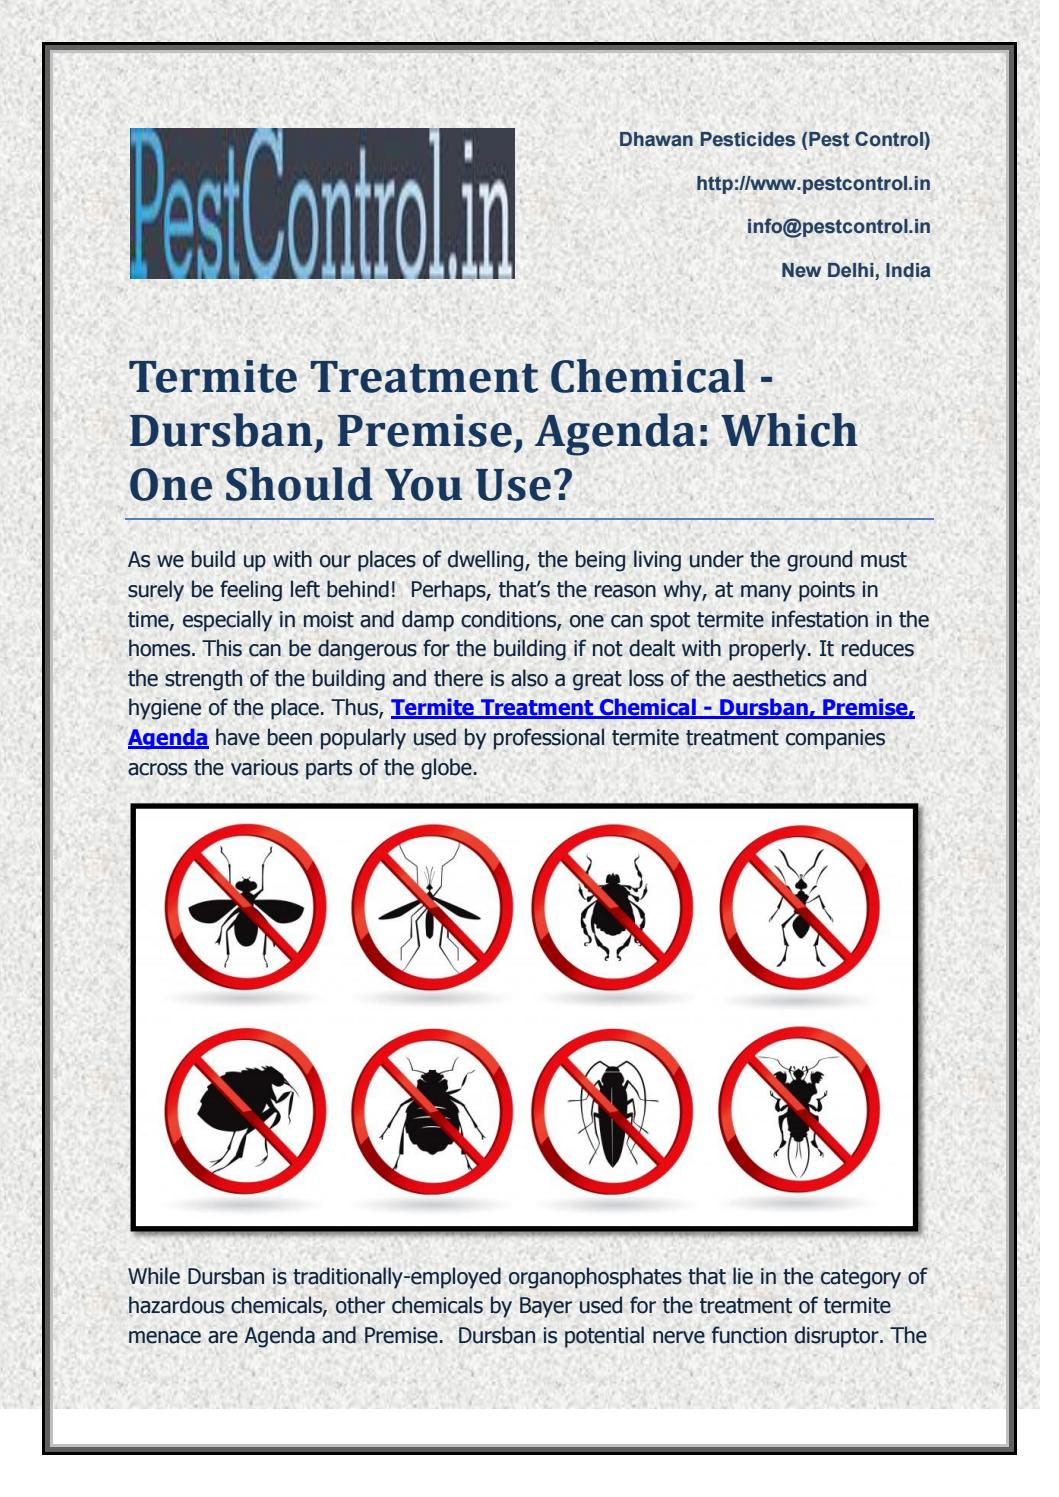 Termite Treatment Chemical Dursban Premise Agenda Which One Should You Use By Pest Control Issuu